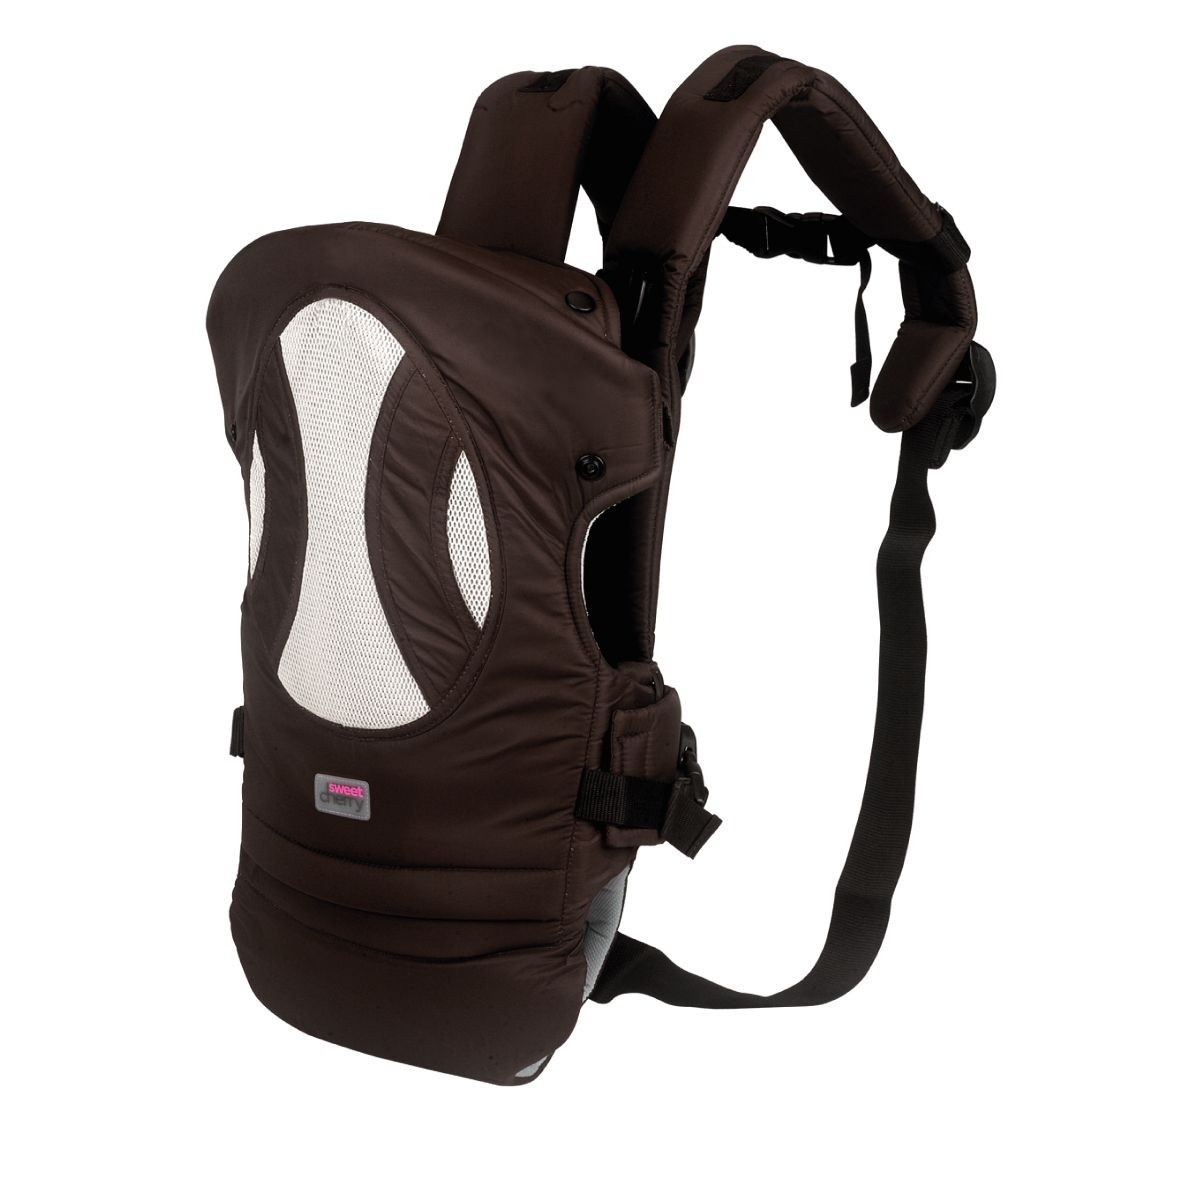 Oval Crotch Carrier - Kico Baby Center